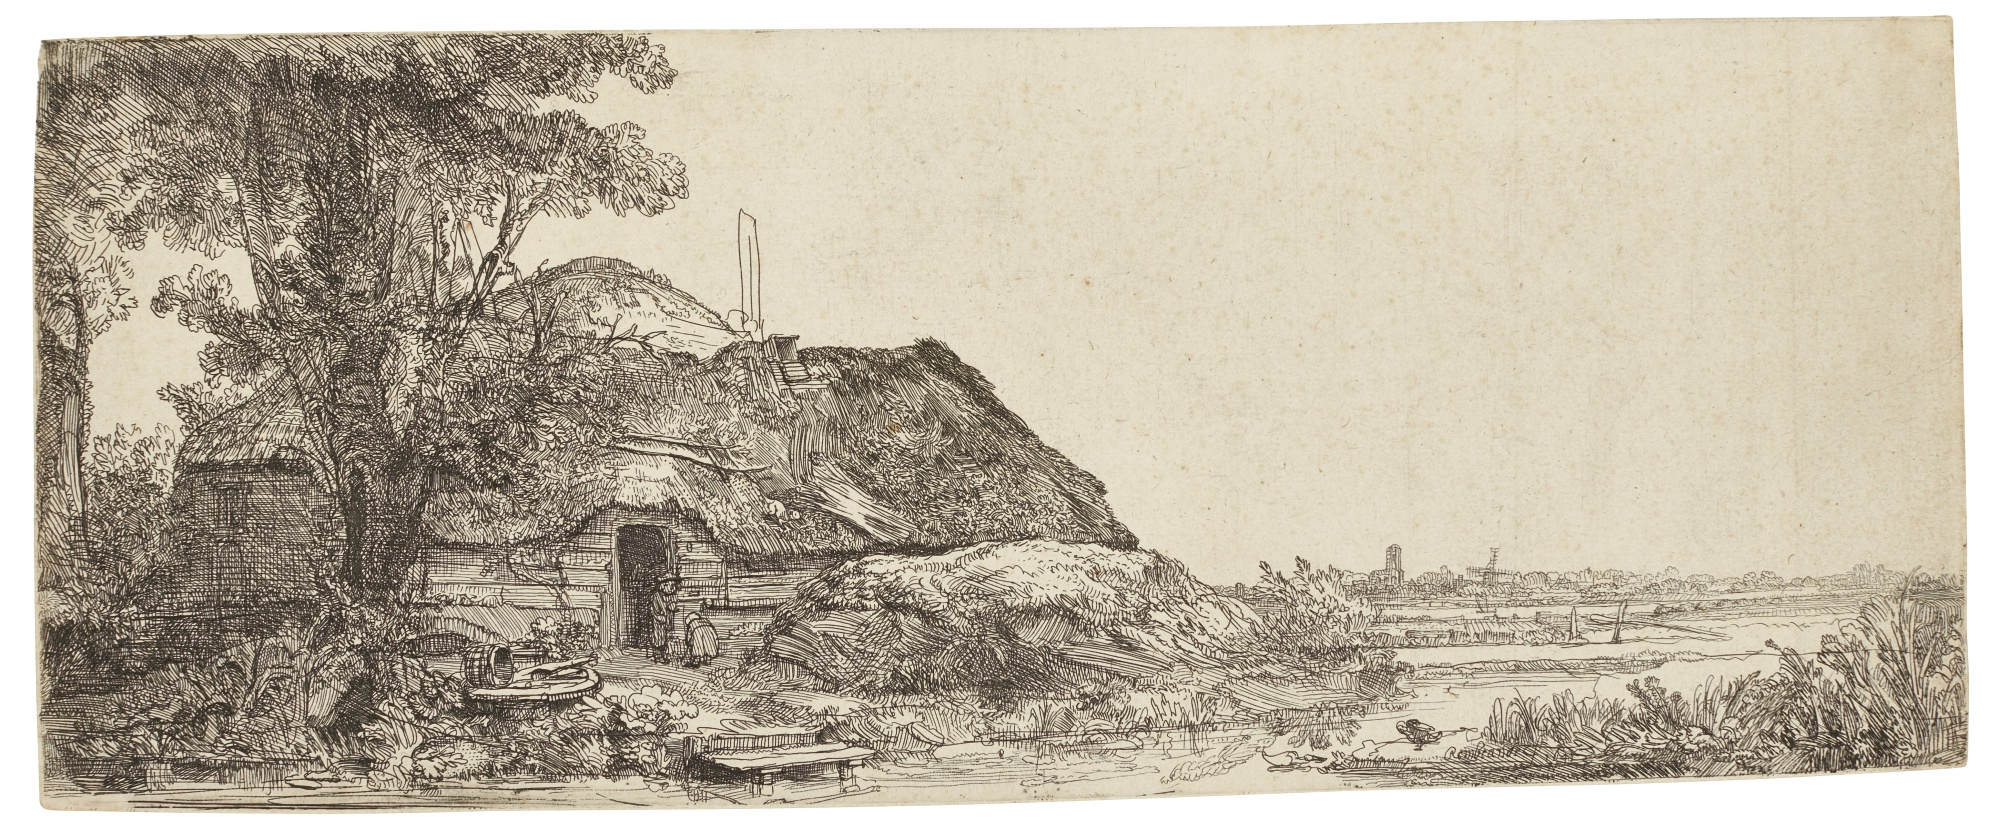 Rembrandt van Rijn-Landscape With A Cottage And A Large Tree (B. Holl. 226; New Holl. 198; H. 178)-1641